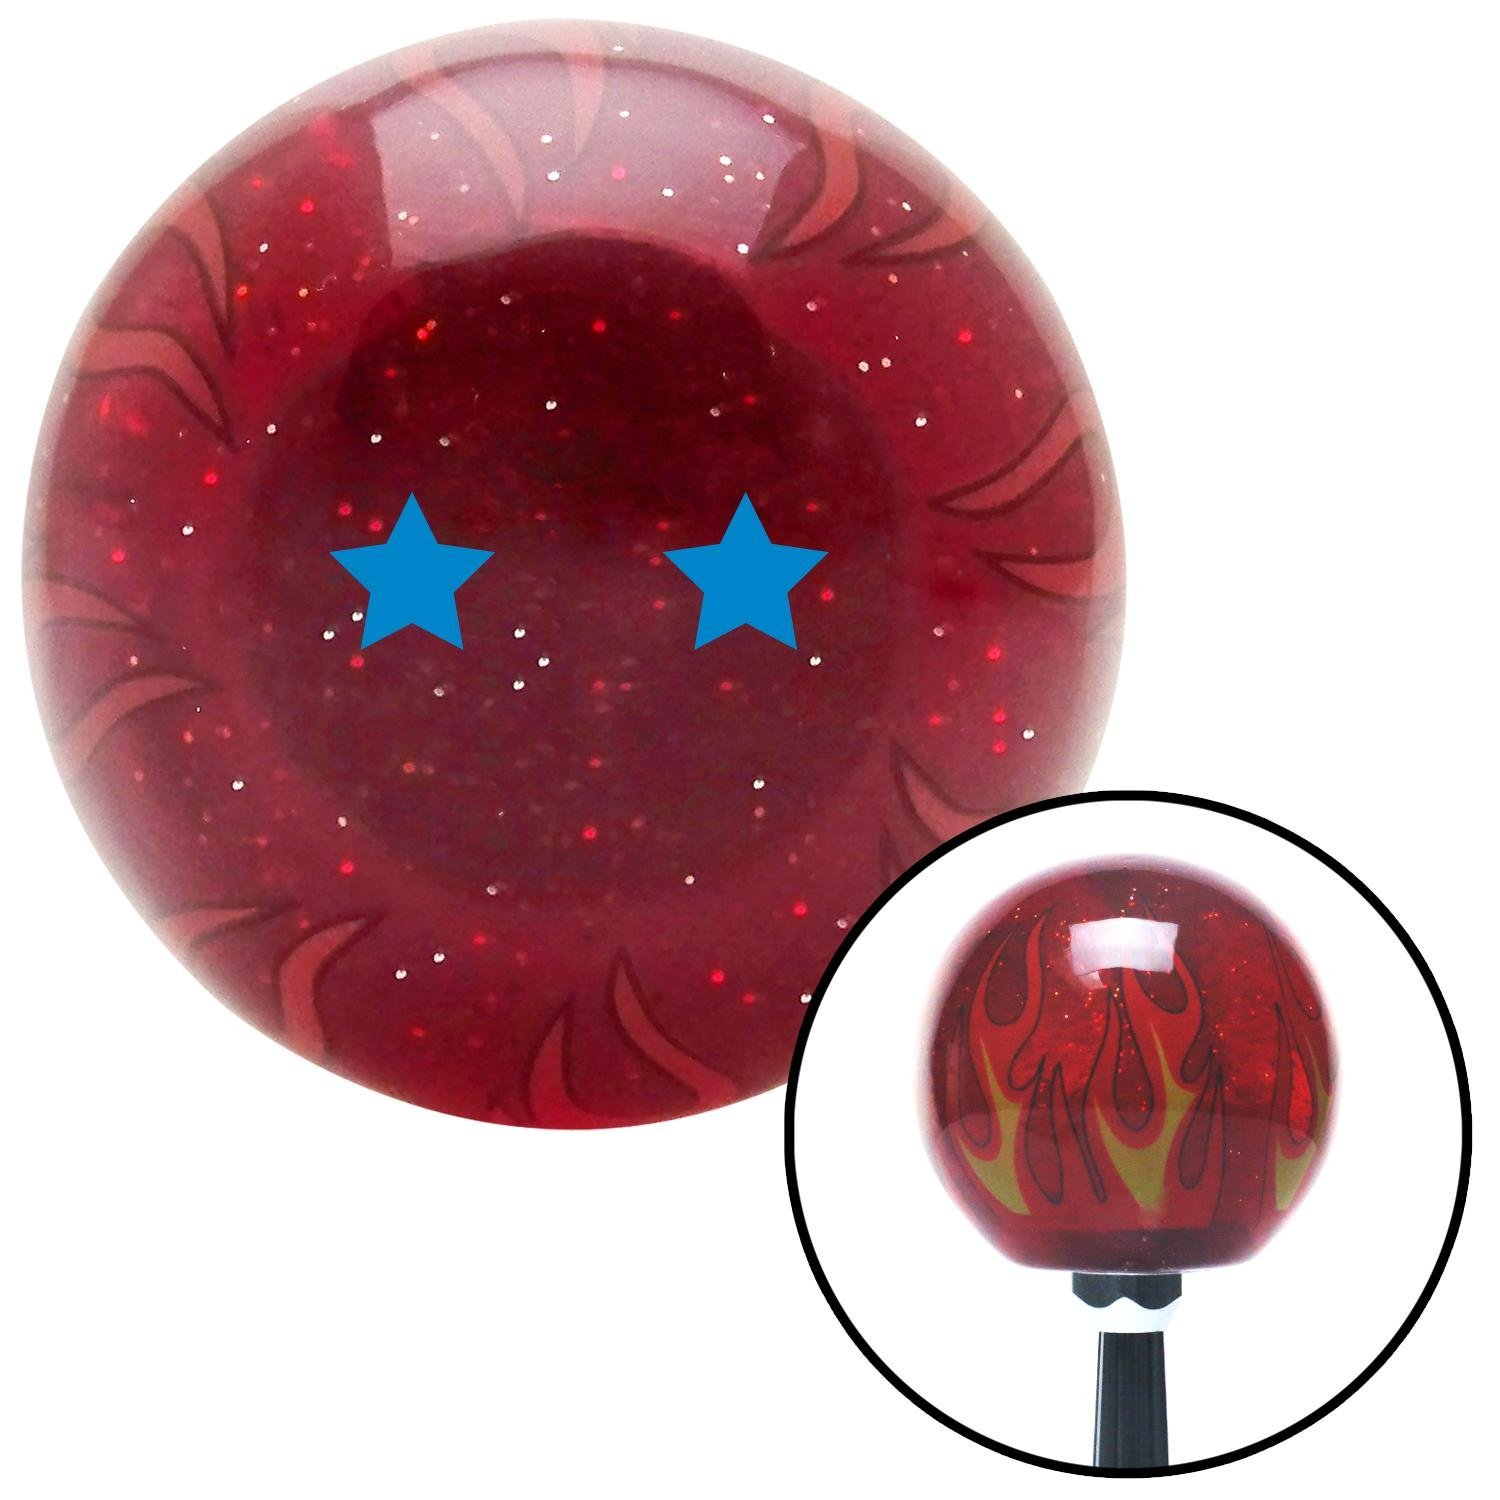 American Shifter 243675 Red Flame Metal Flake Shift Knob with M16 x 1.5 Insert Blue Dragon Ball Z - 2 Star